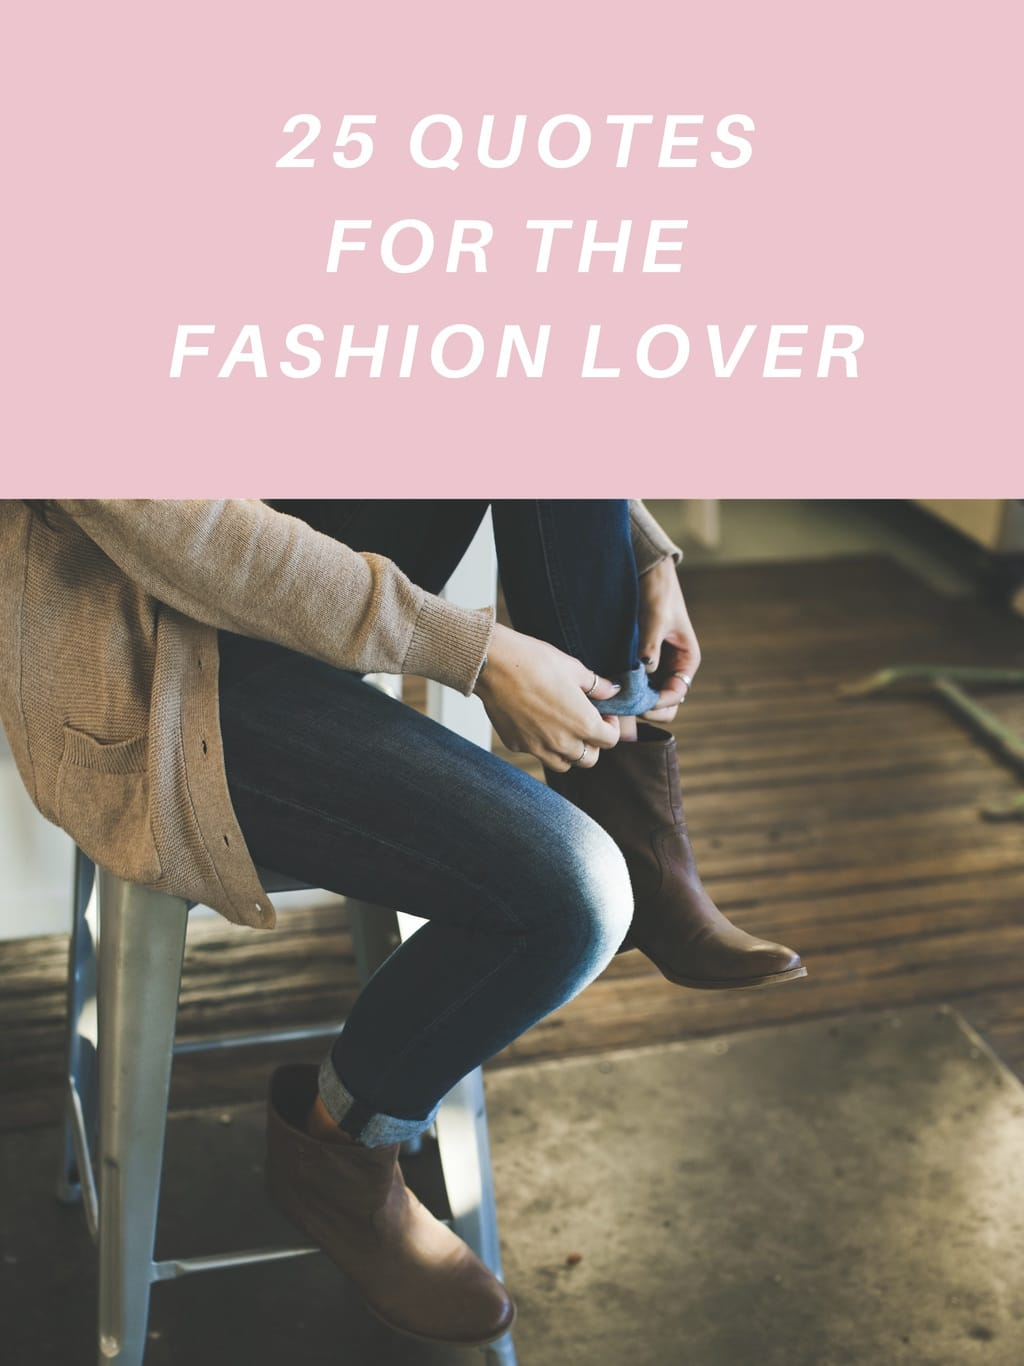 Life As We Know It Muslimah Clothing Fashion Tips: 25 Fashion Quotes For Fashion Girls